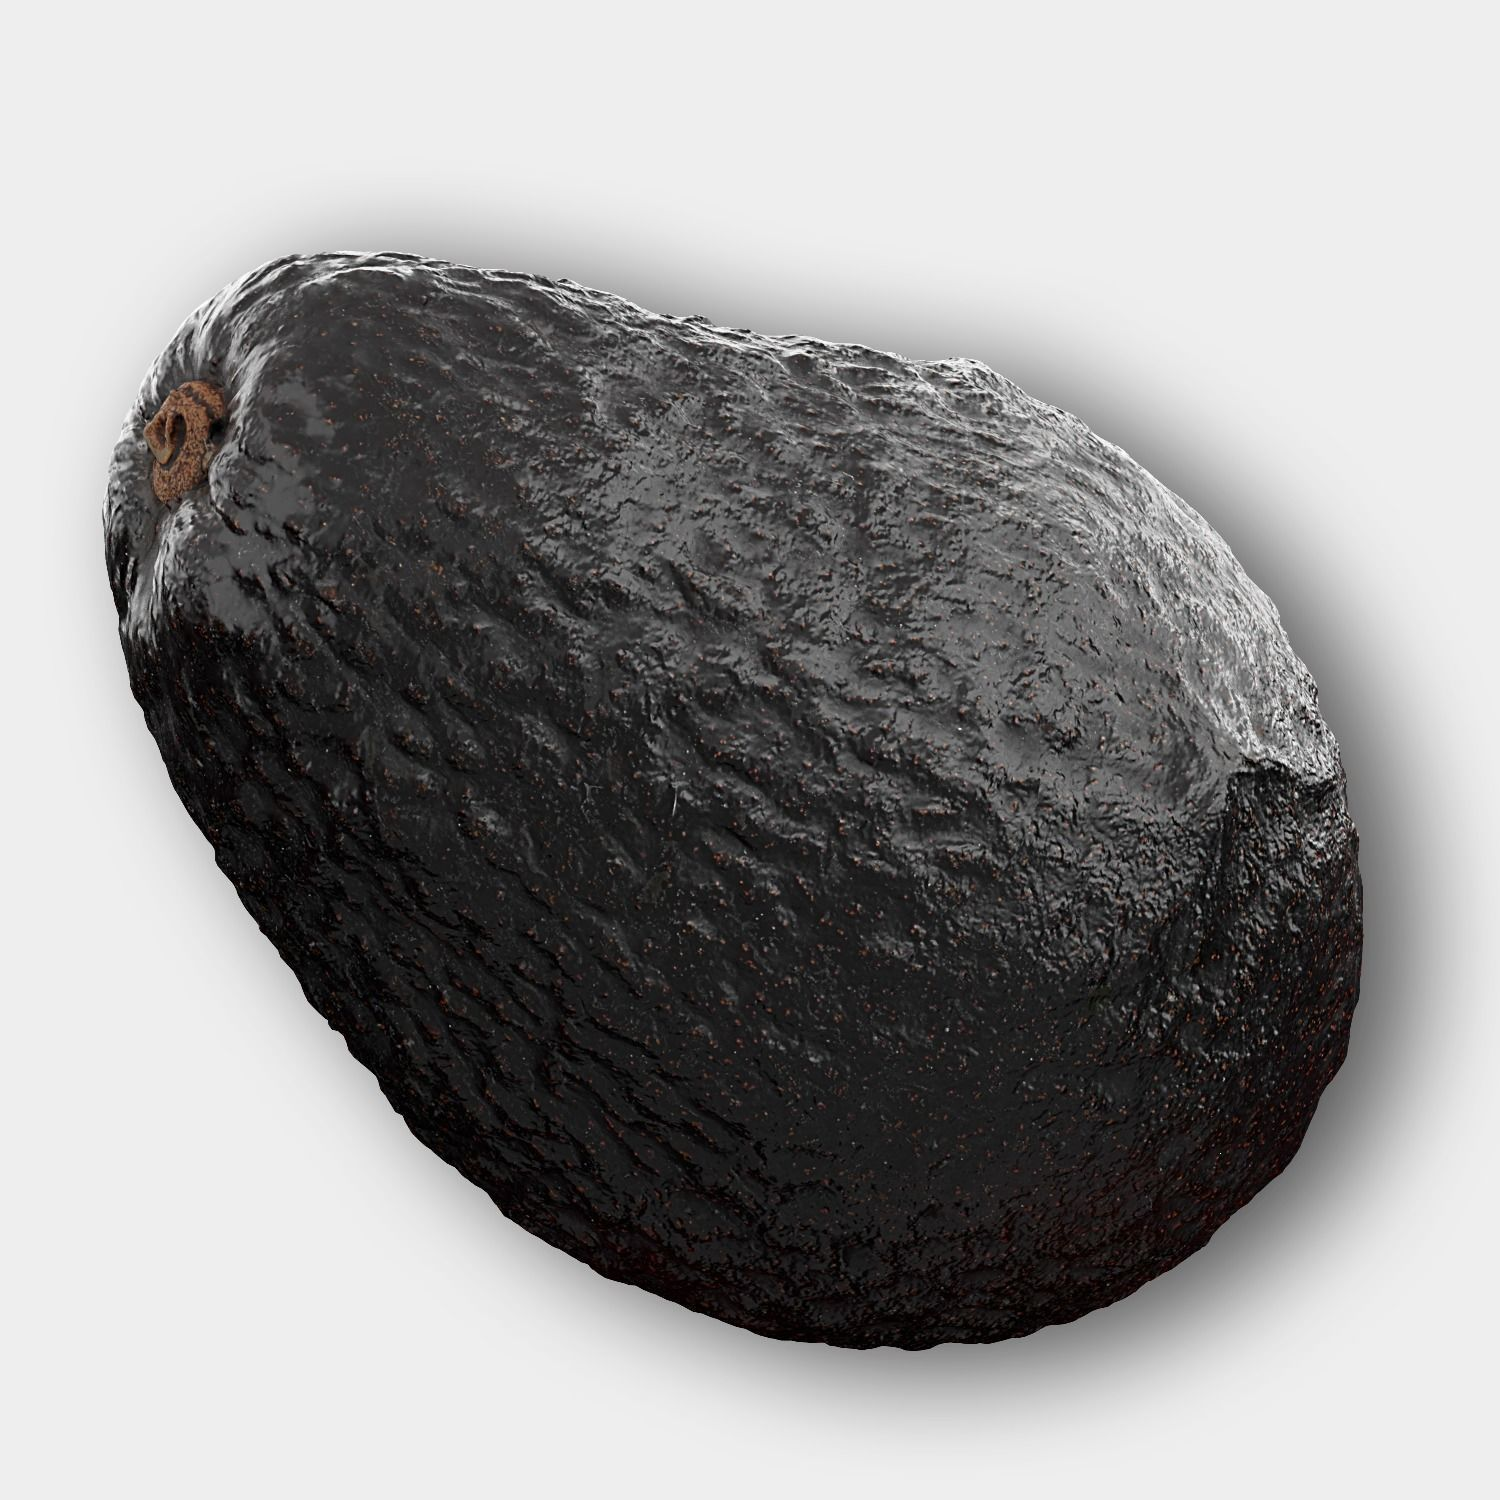 Photorealistic 3D Scanned Avocado